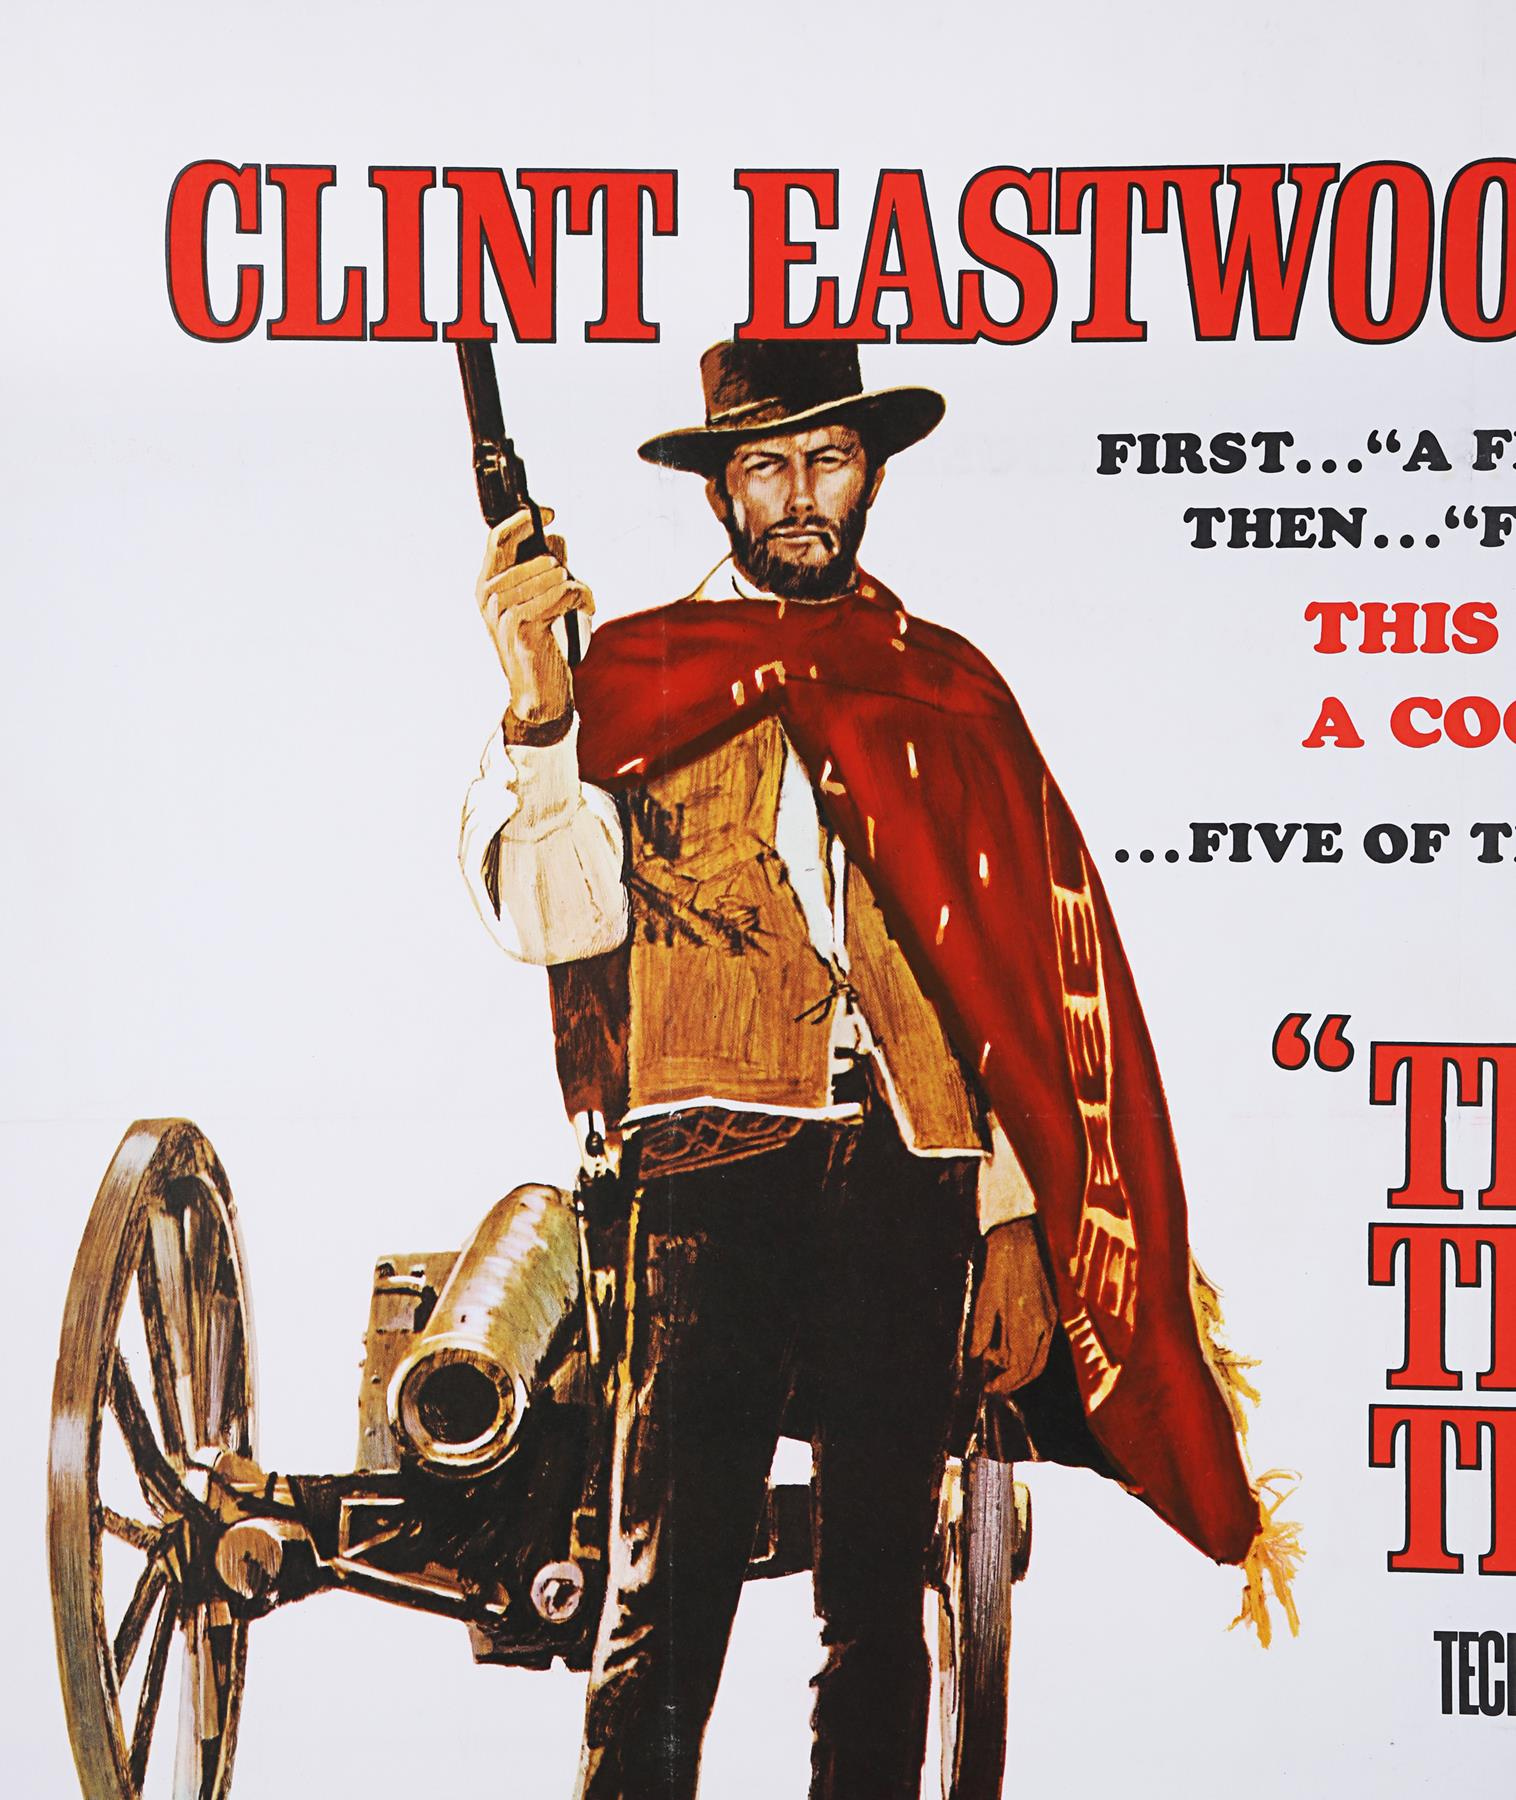 THE GOOD, THE BAD AND THE UGLY (1966) - UK Quad, 1968 - Image 7 of 7